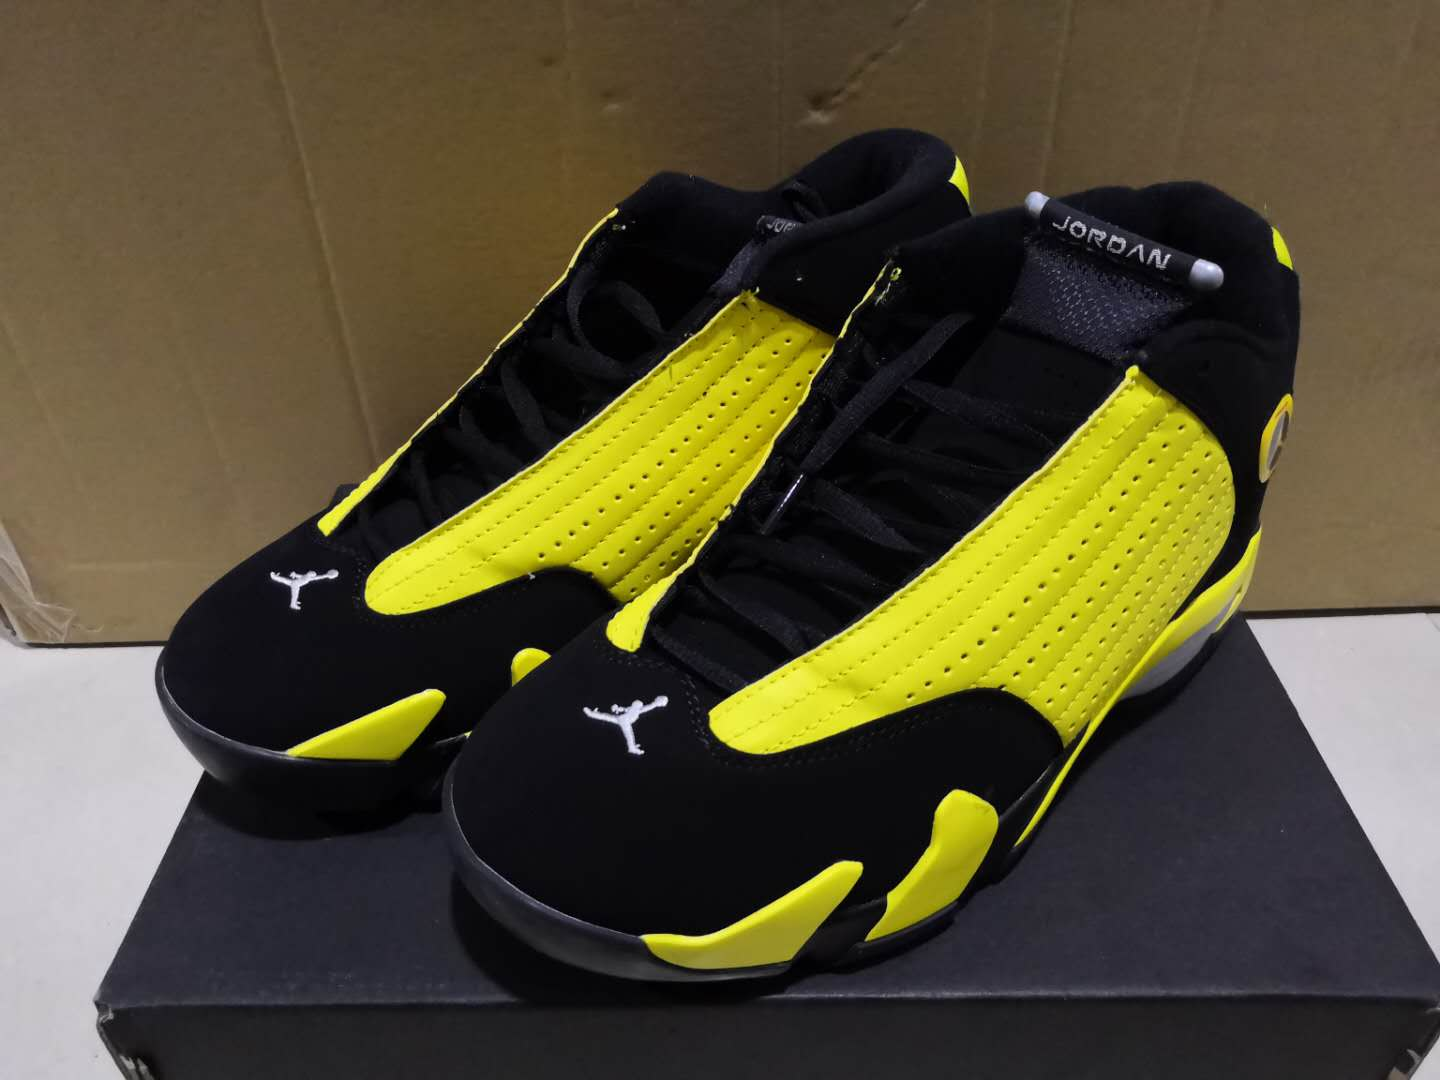 2019 Men Jordan 14 Yellow Black Shoes